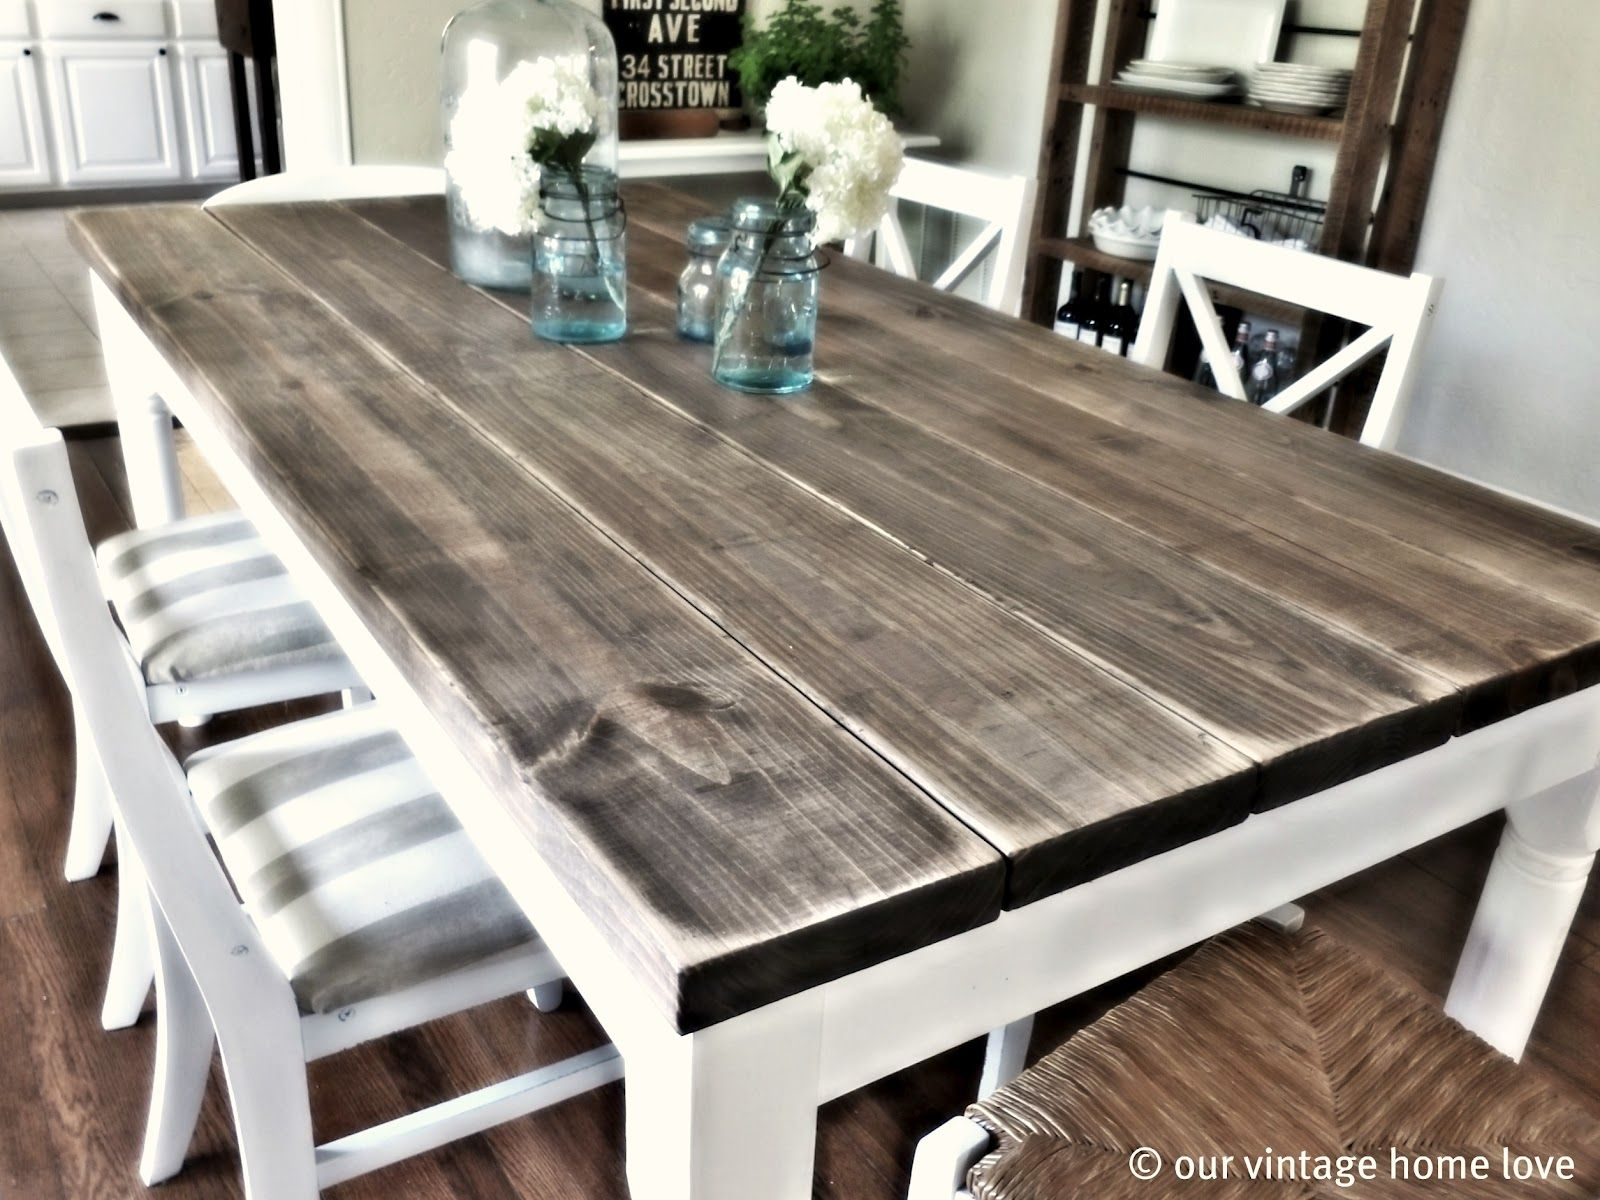 17 Best ideas about Barnwood Dining Table on Pinterest Diy table